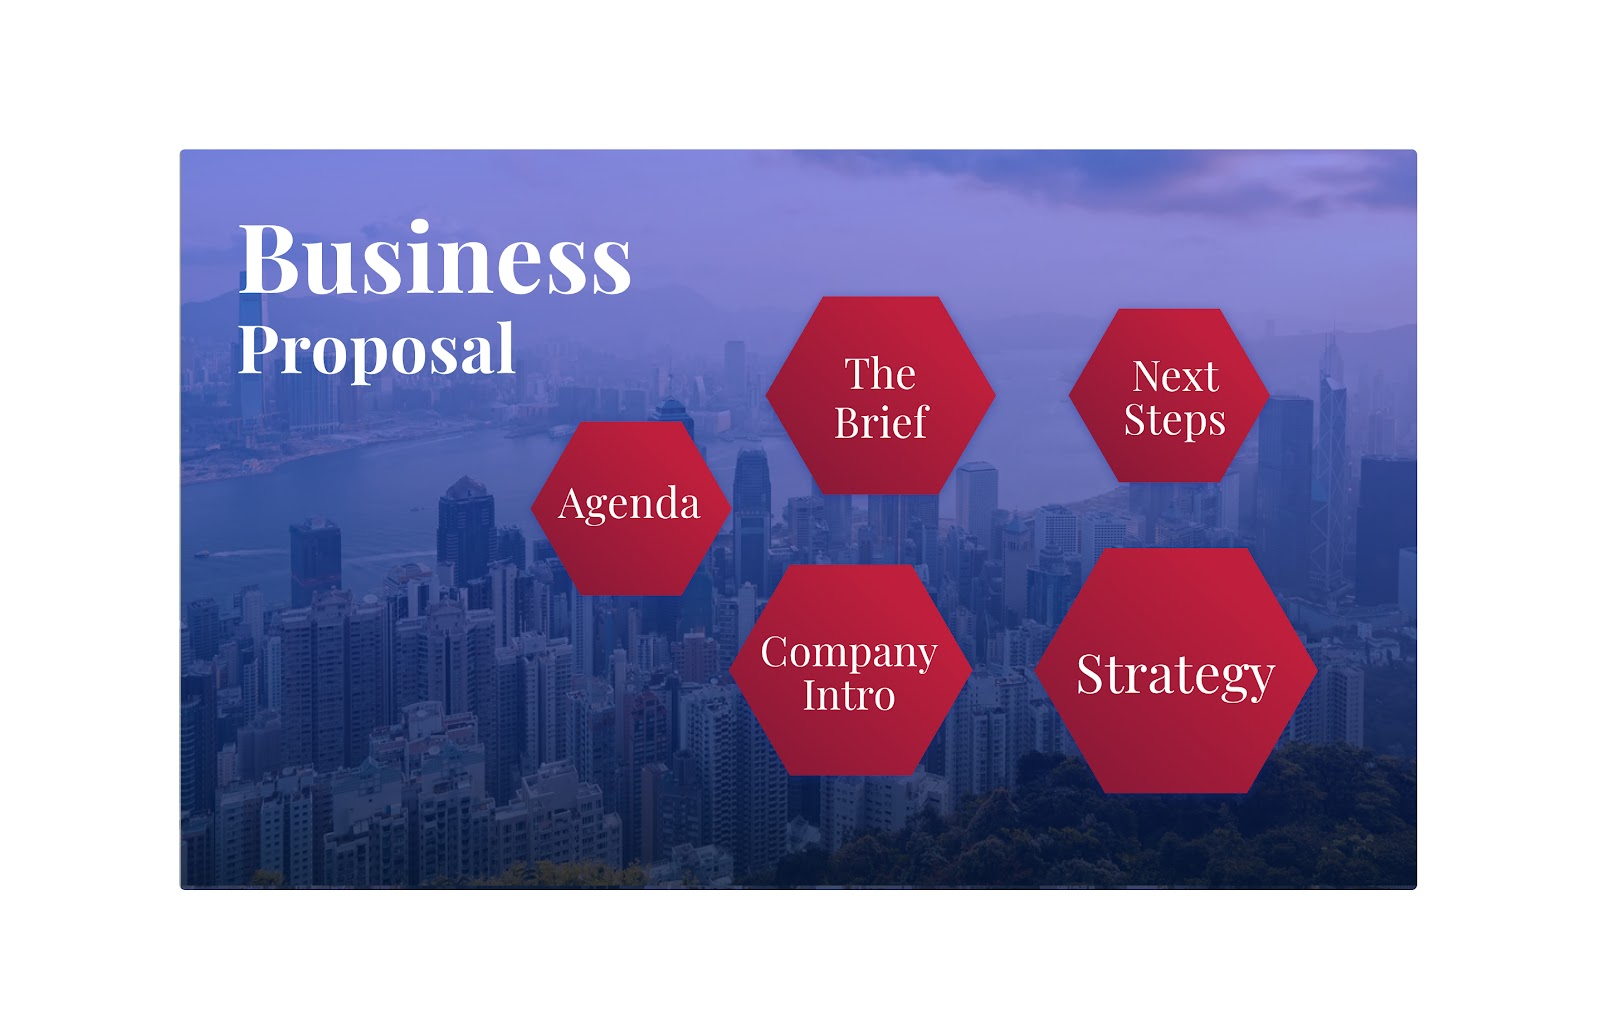 Check out this example of a business proposal presentation.